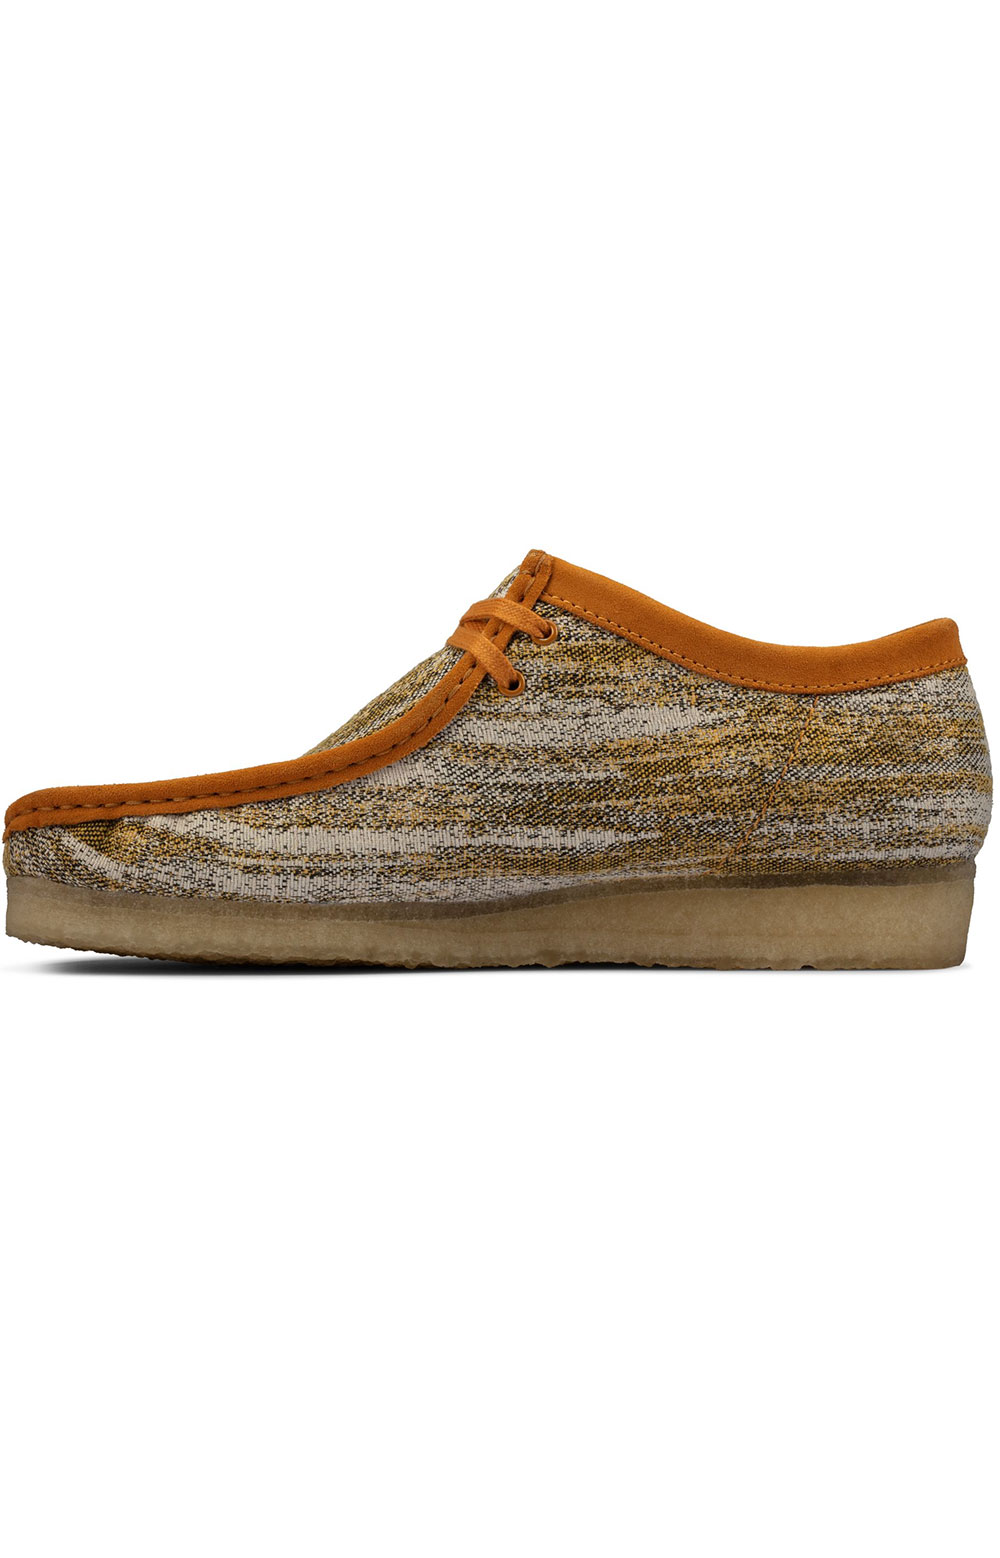 (26159548) Wallabee Shoes - Sand Fabric  5